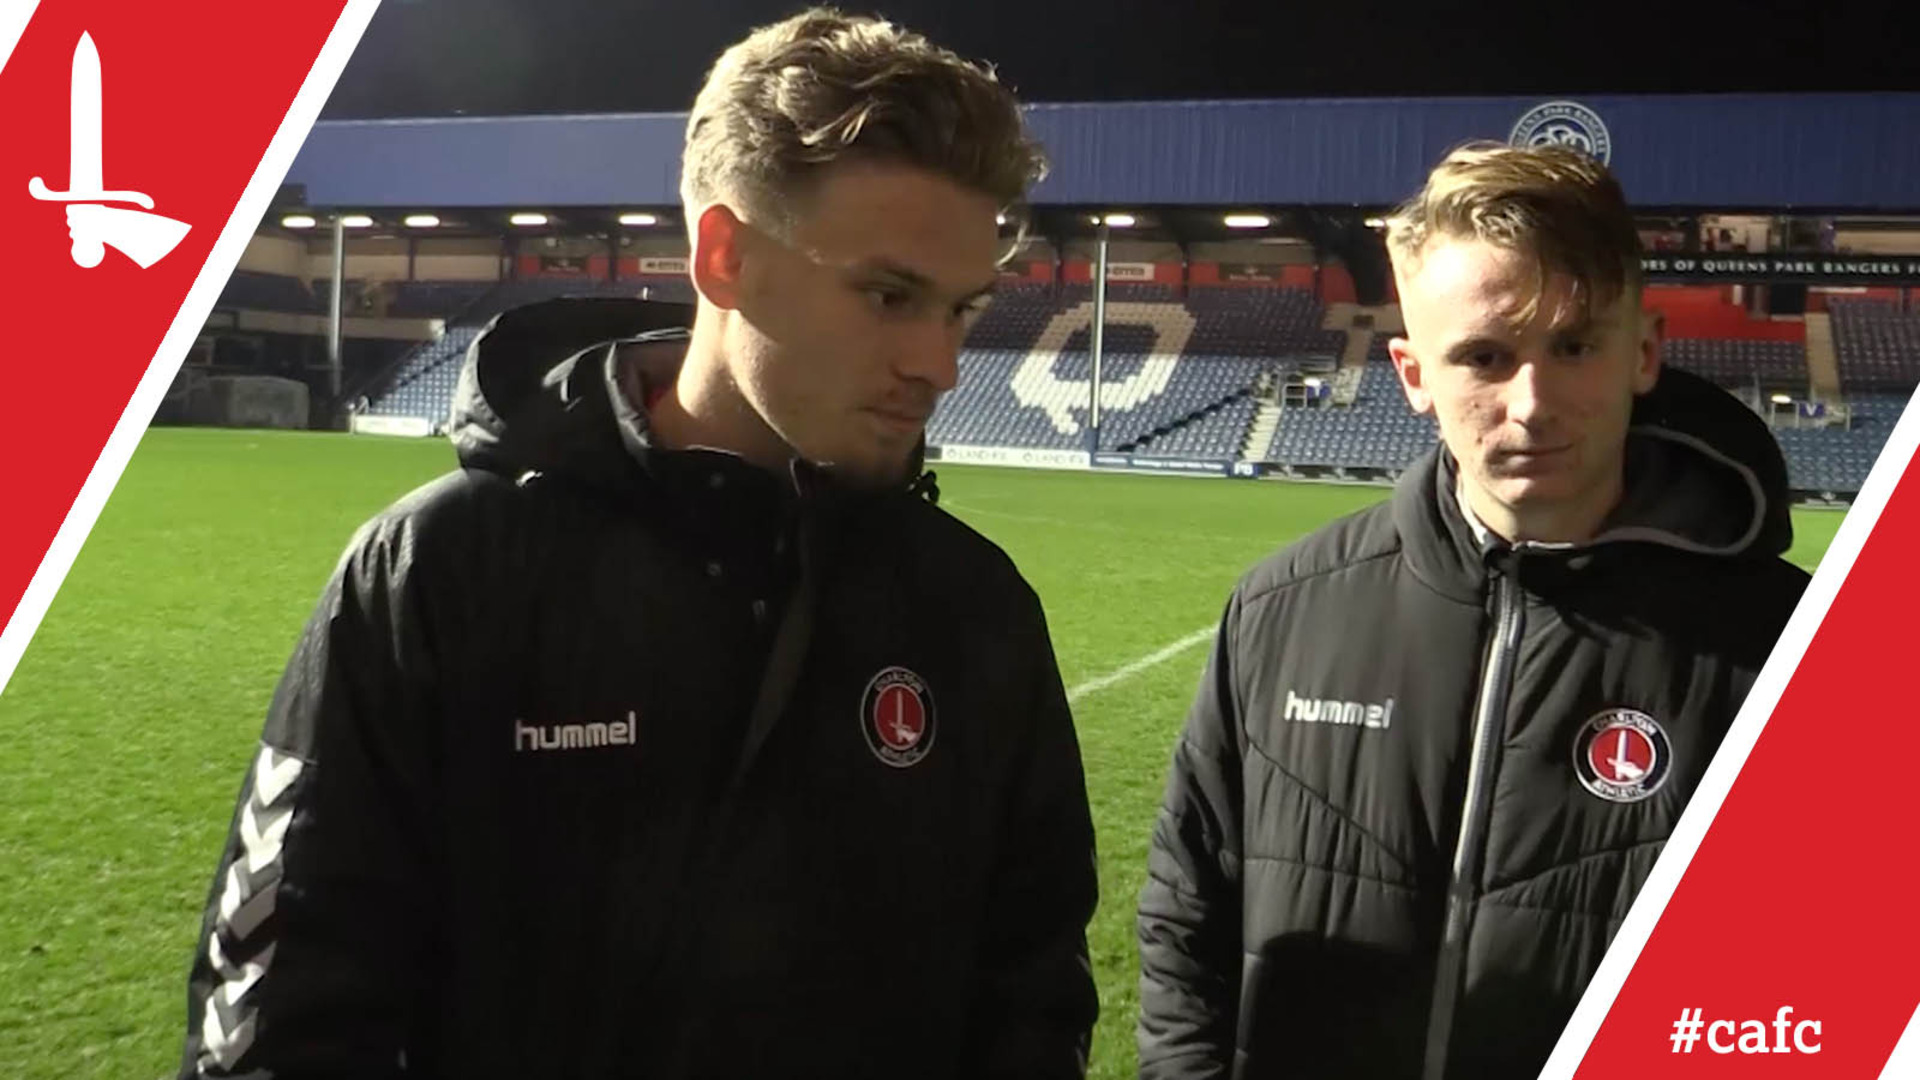 Goalscorers Carey and Doughty on Charlton's FA Youth Cup win at QPR